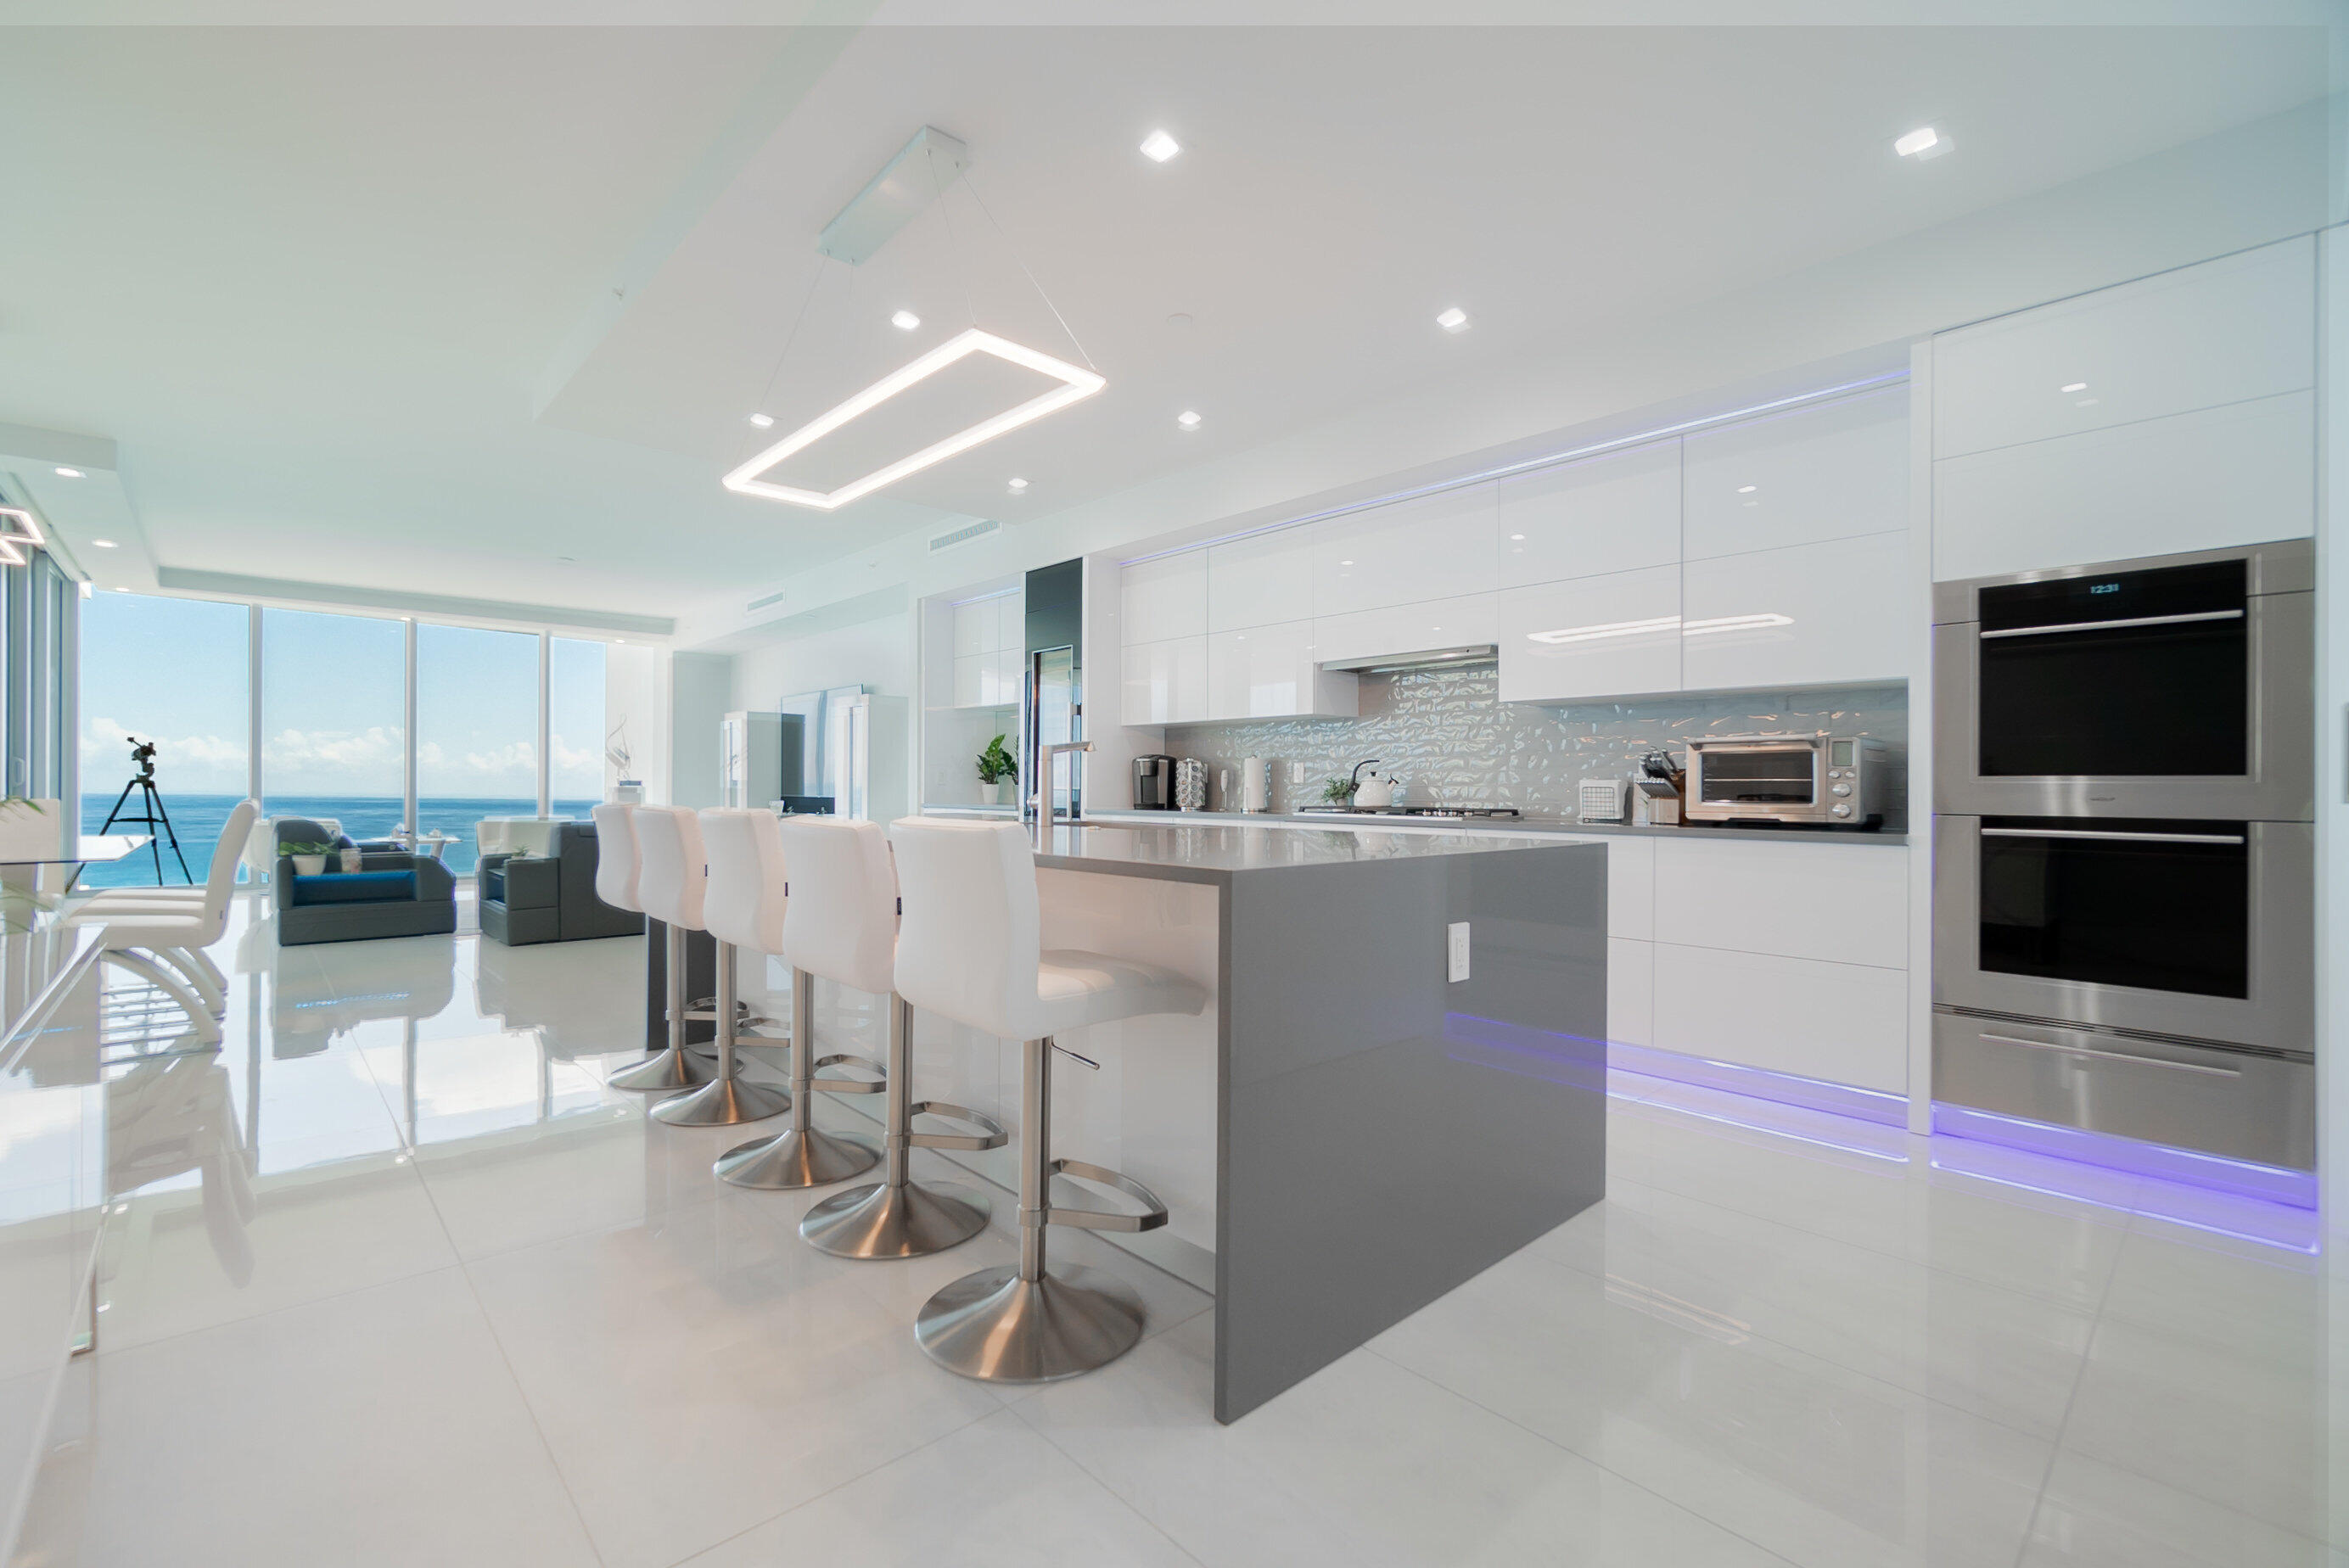 Live in the most luxurious boutique oceanfront building on Singer Island. No expenses were spared to upgrade the interior with high end finishes. The kitchen features solid wood, high gloss laminate finish cabinets with Electronic Auto Touch mechanism. Kitchen, baths and laundry room feature slate colored quartz counters to compliment the white cabinetry. All closets and the extra large pantry were upgraded with custom built-in cabinetry. Remote control window shades throughout the condo. Stainless Steel & glass barn door to the family/game room with short throw projection TV with Sonos surround entertainment system. The Control 4 Smart Home System allows you to adjust music, ac, window shades and more from your mobile phone. Video tour of Condo: https://www.youtube.com/embed/2QS2CF9zBEA